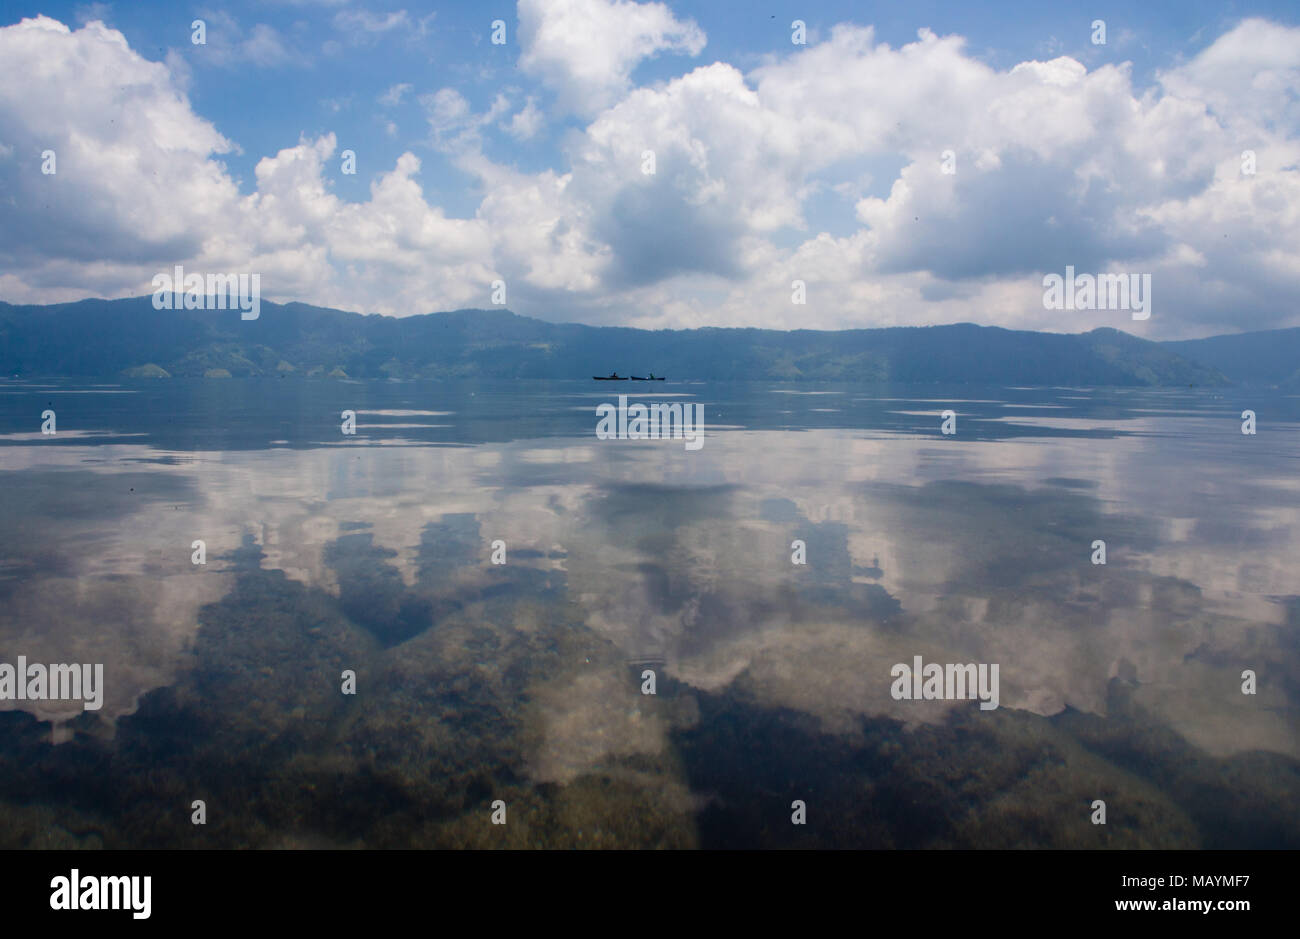 Lake Toba is one not the largest Volcanic lakes. You can see the rocks peaking through the clear fresh water. - Stock Image